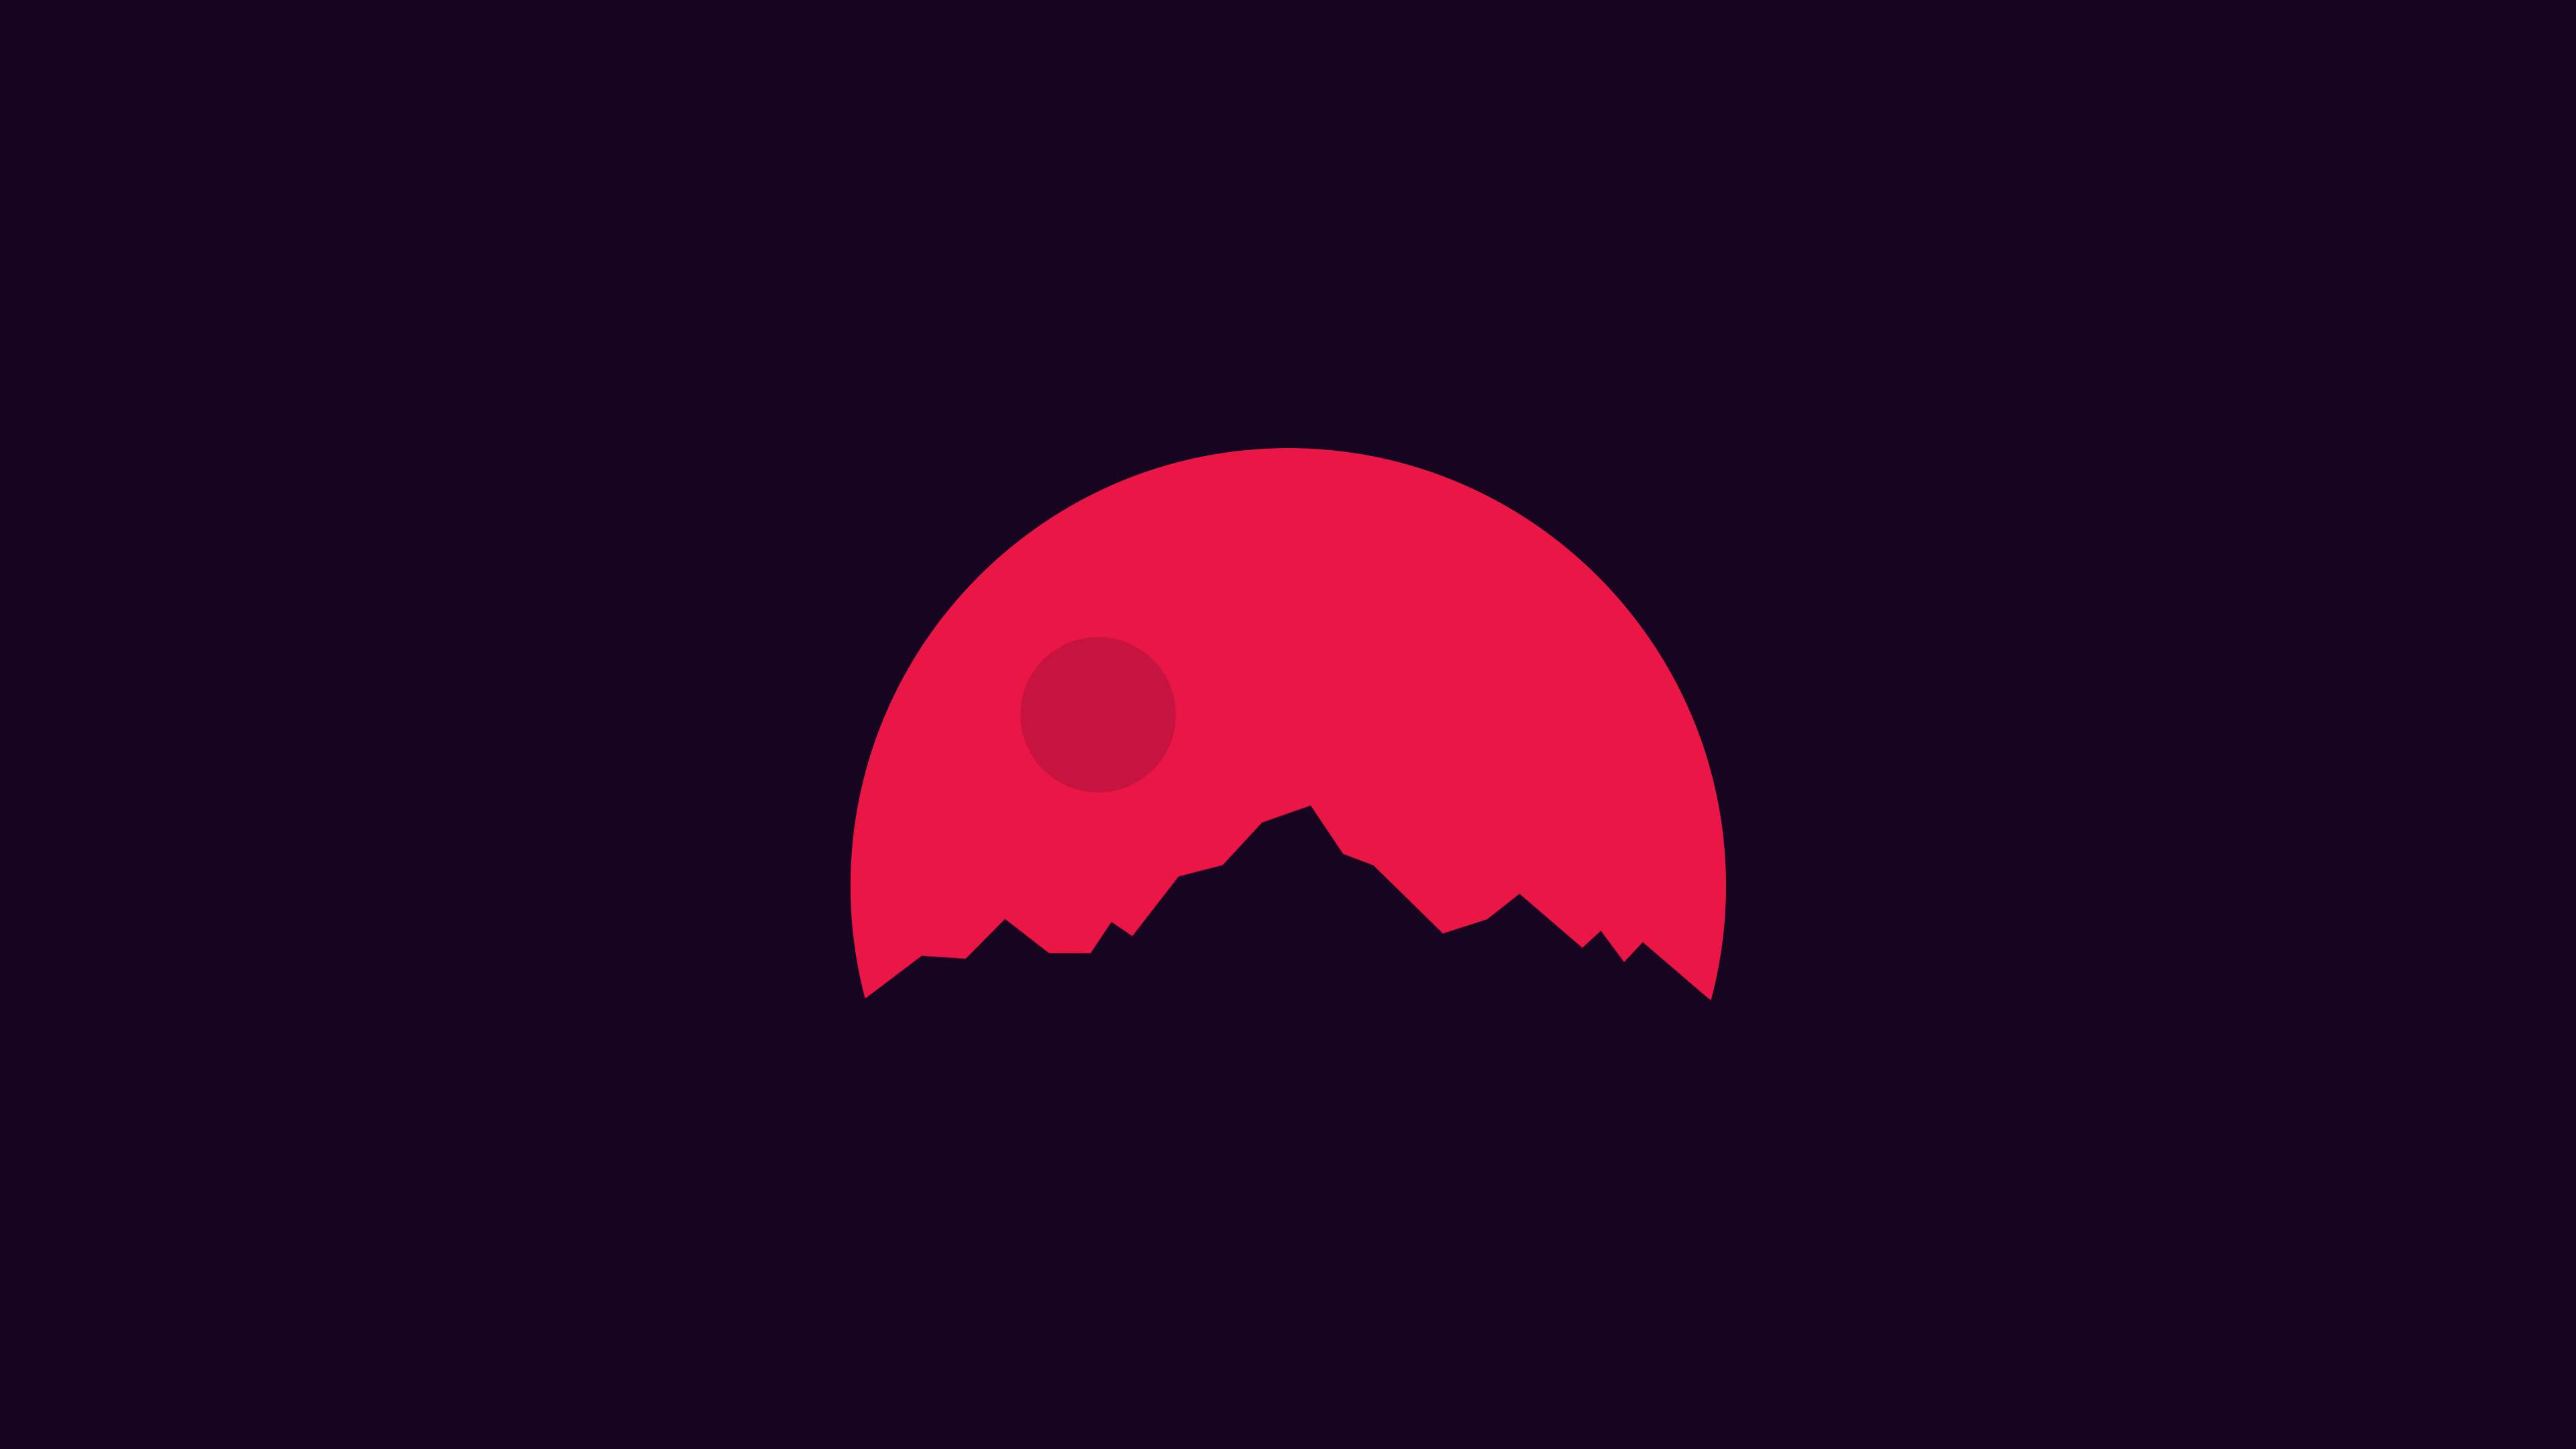 Minimalism mountains red hd artist 4k wallpapers images for A minimalist